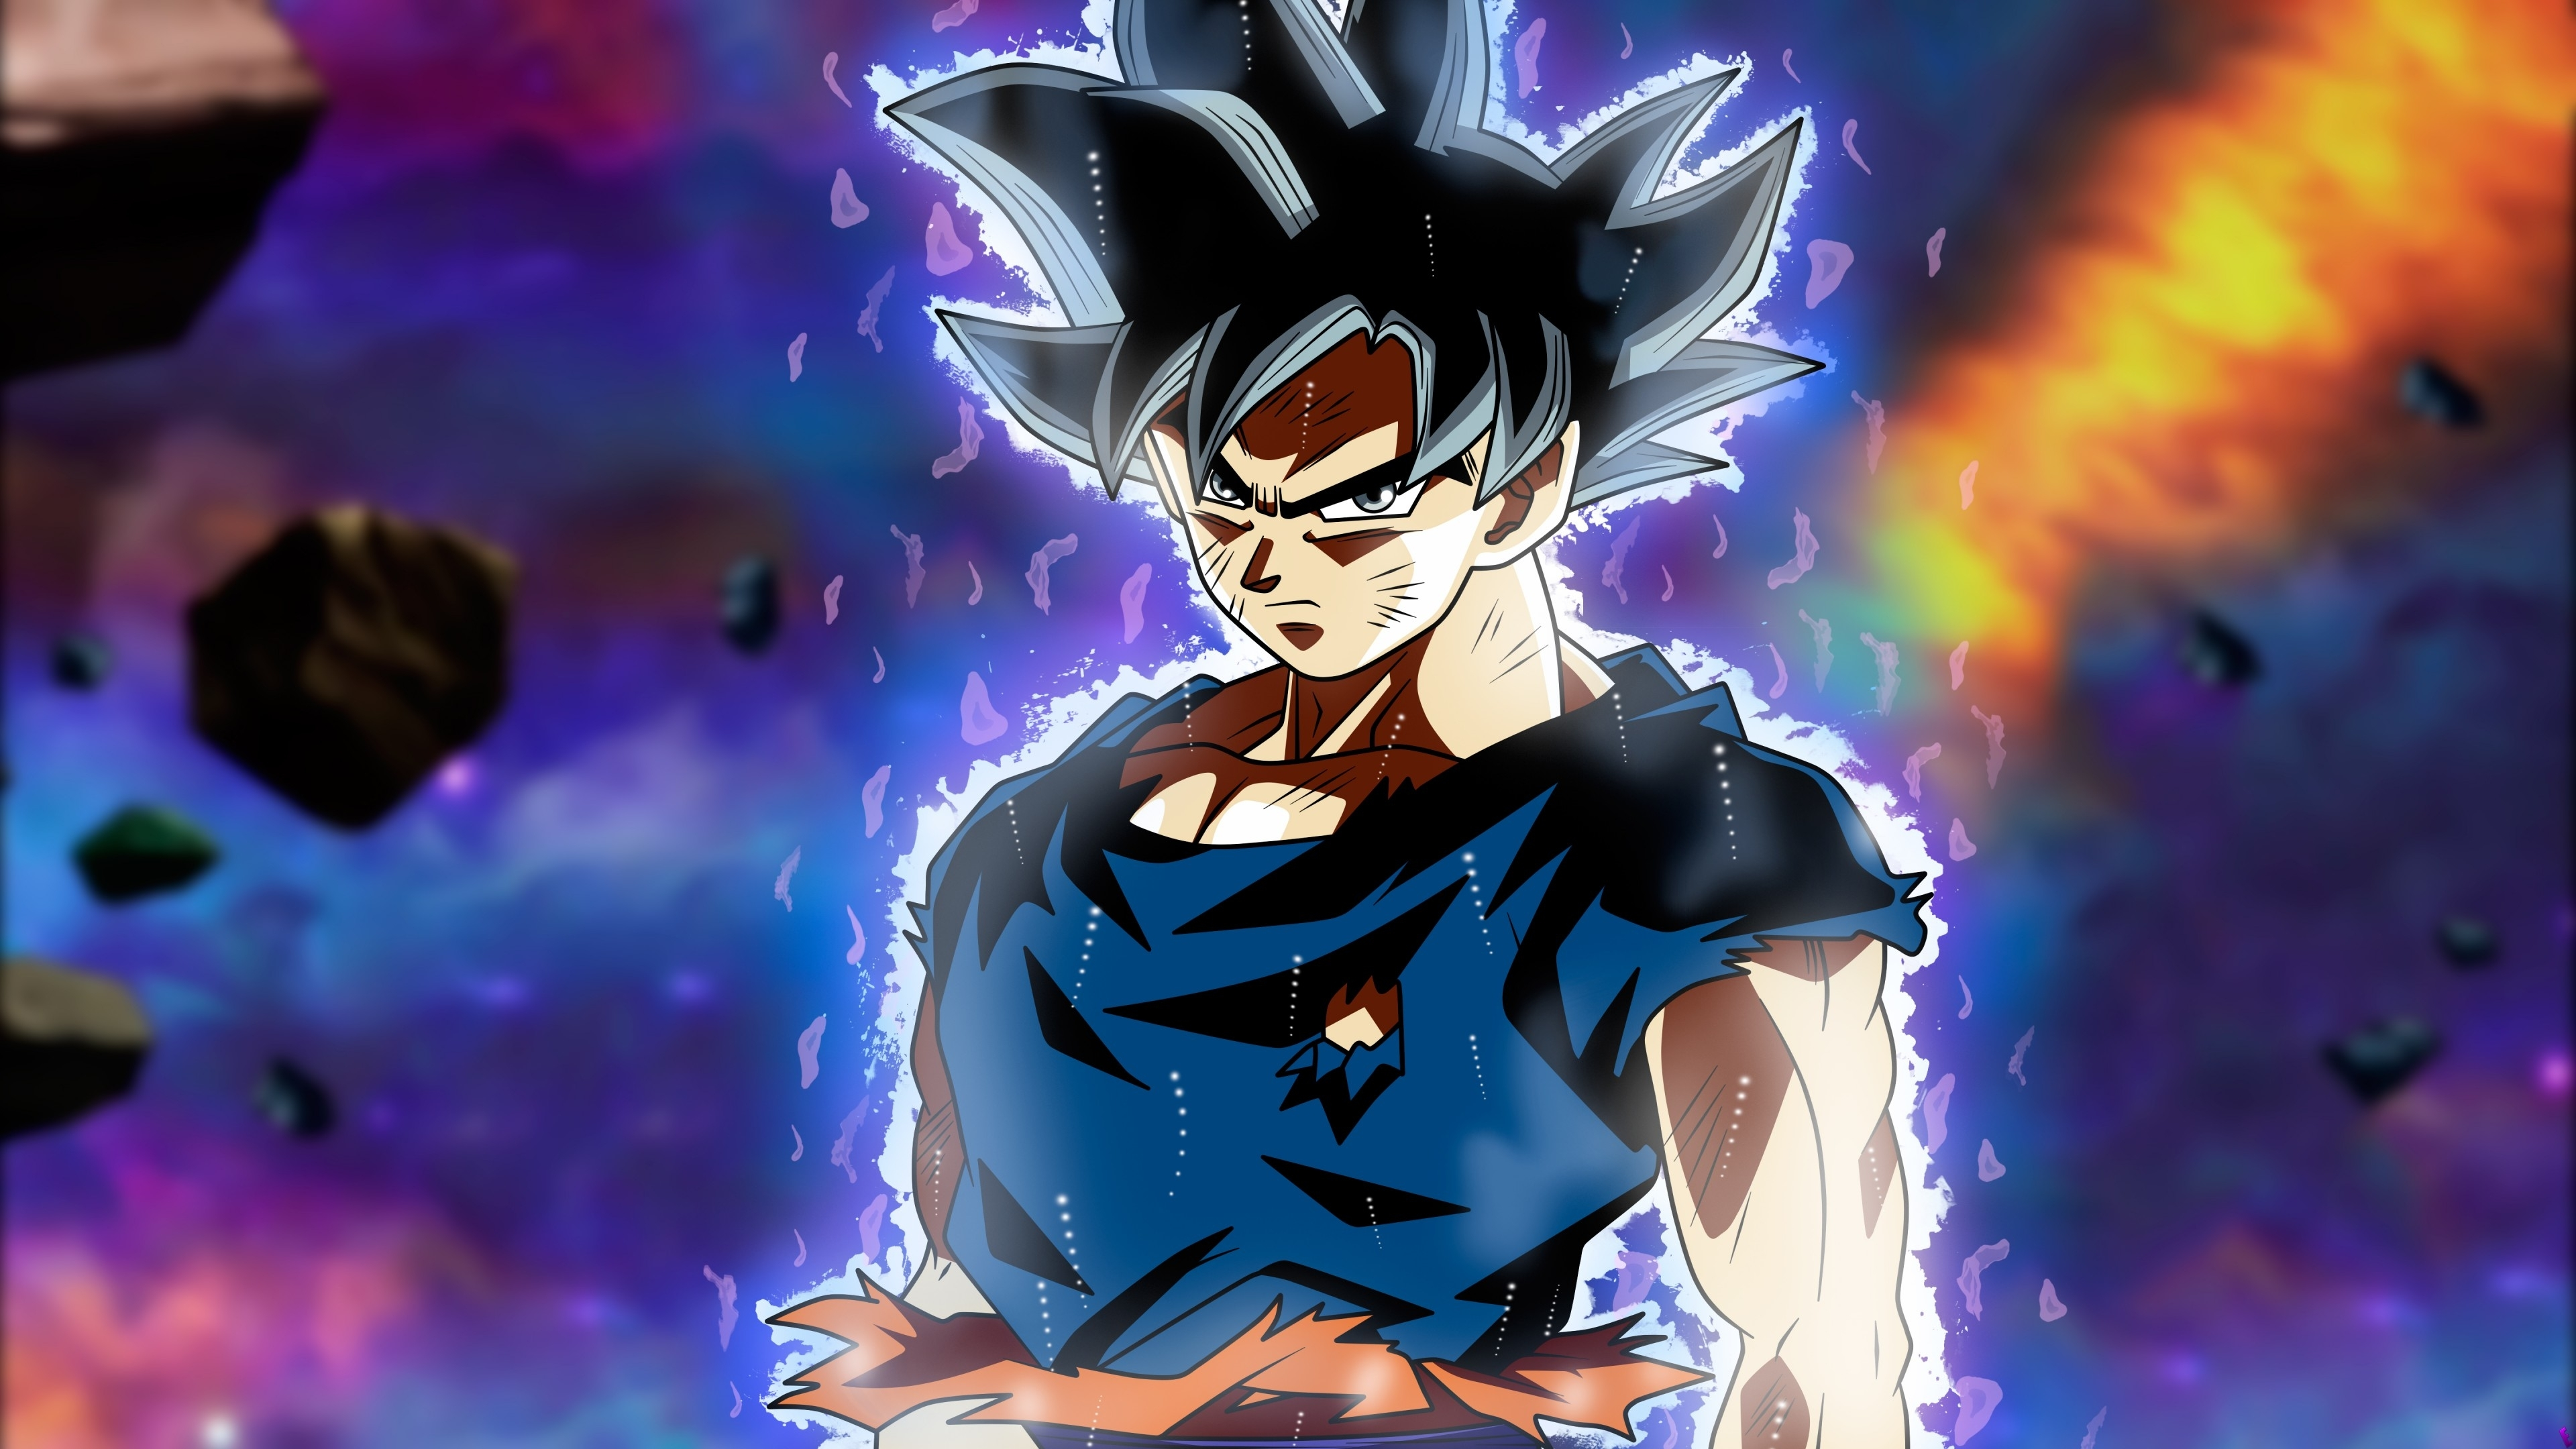 wallpaper ultra instinct goku, dragon ball super, 5k, anime, #12345